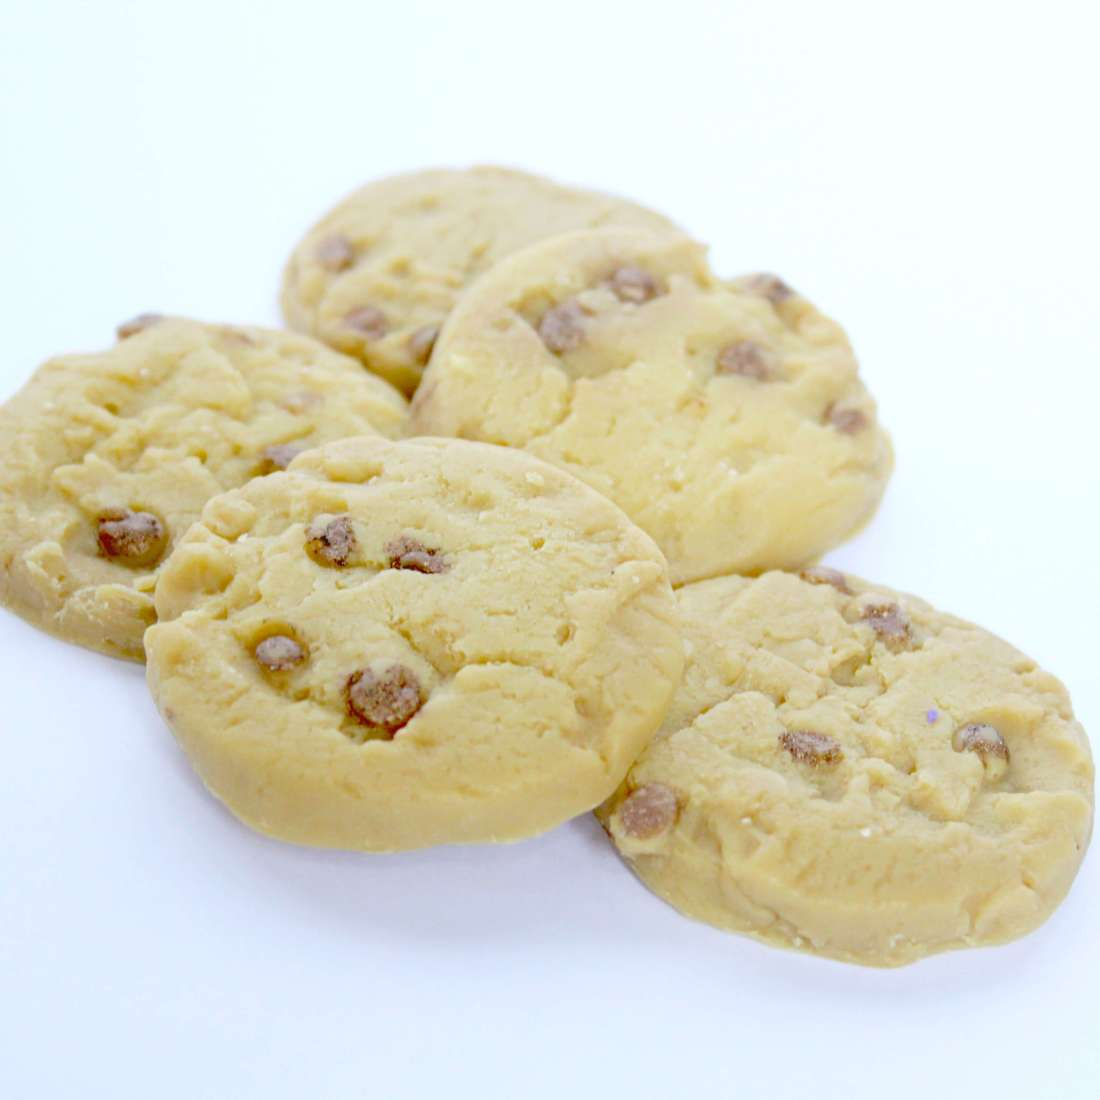 Chocolate Chip Novelty Soap by Soap Art Soaps